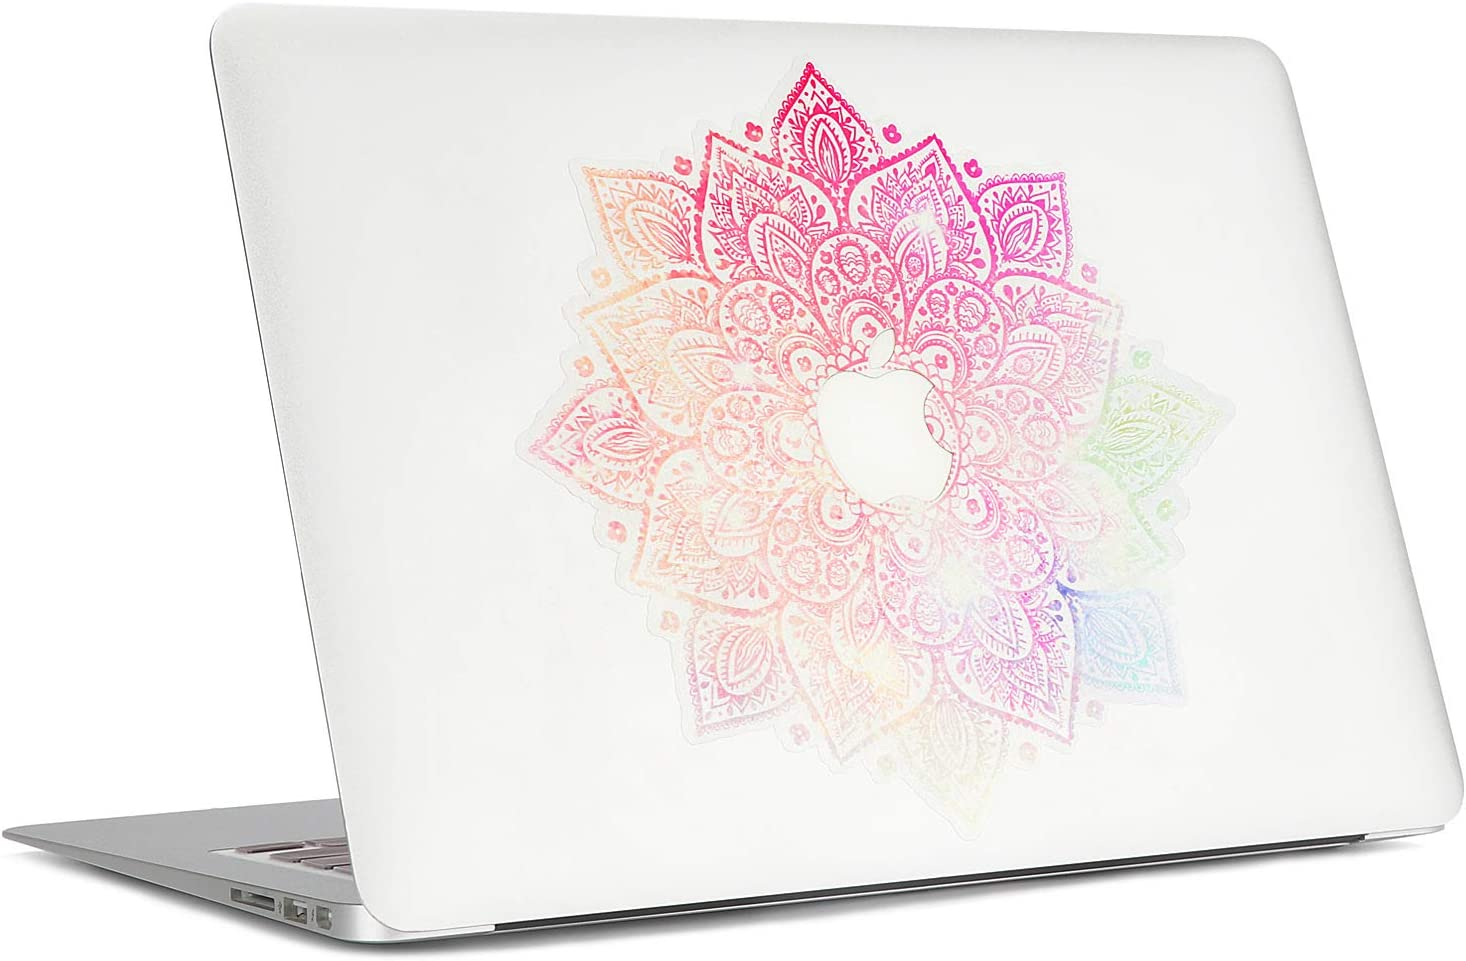 "Last Innovation Leaves with Milky Way Removable Vinyl Decal Sticker Skin for Apple MacBook Pro Air Mac 13""/Unibody 13"" Laptop"